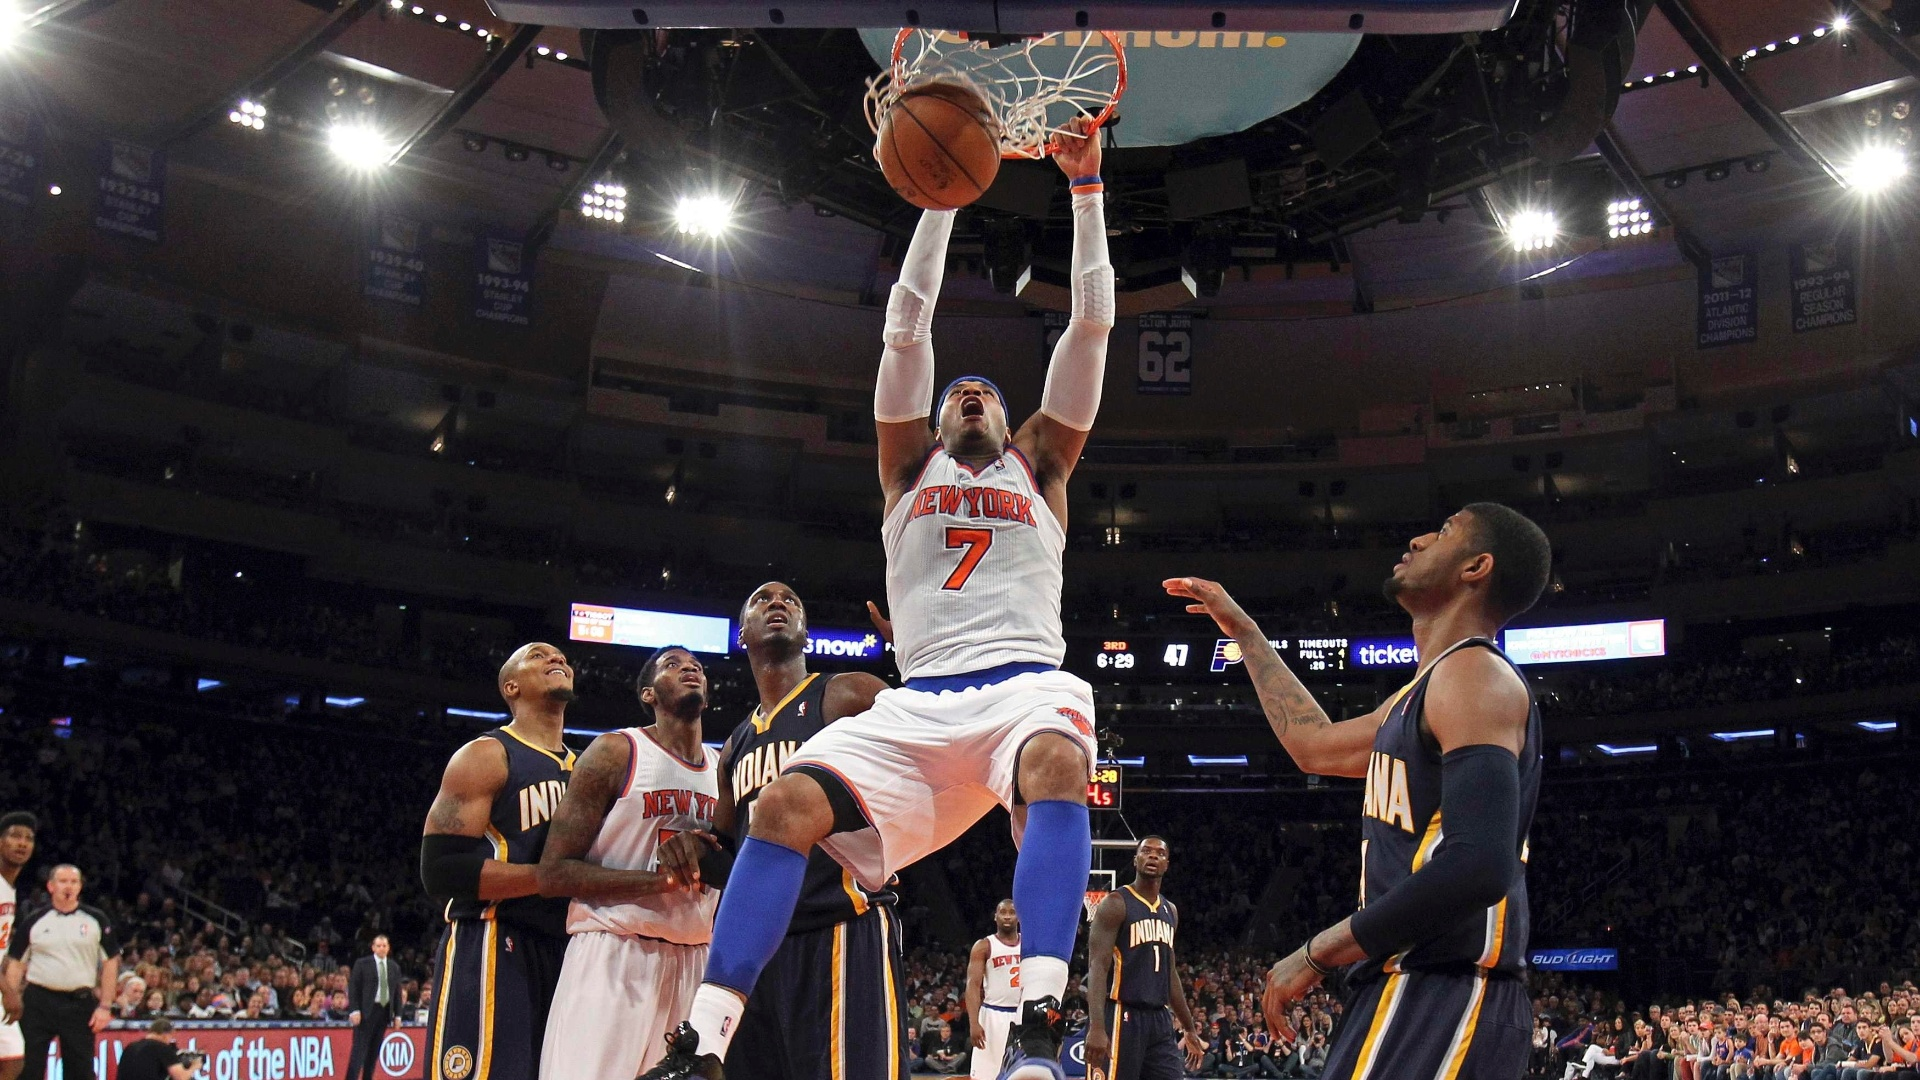 14.abr.2013 - Carmelo Anthony converte enterrada na vitória do New York Knicks sobre o Indiana Pacers